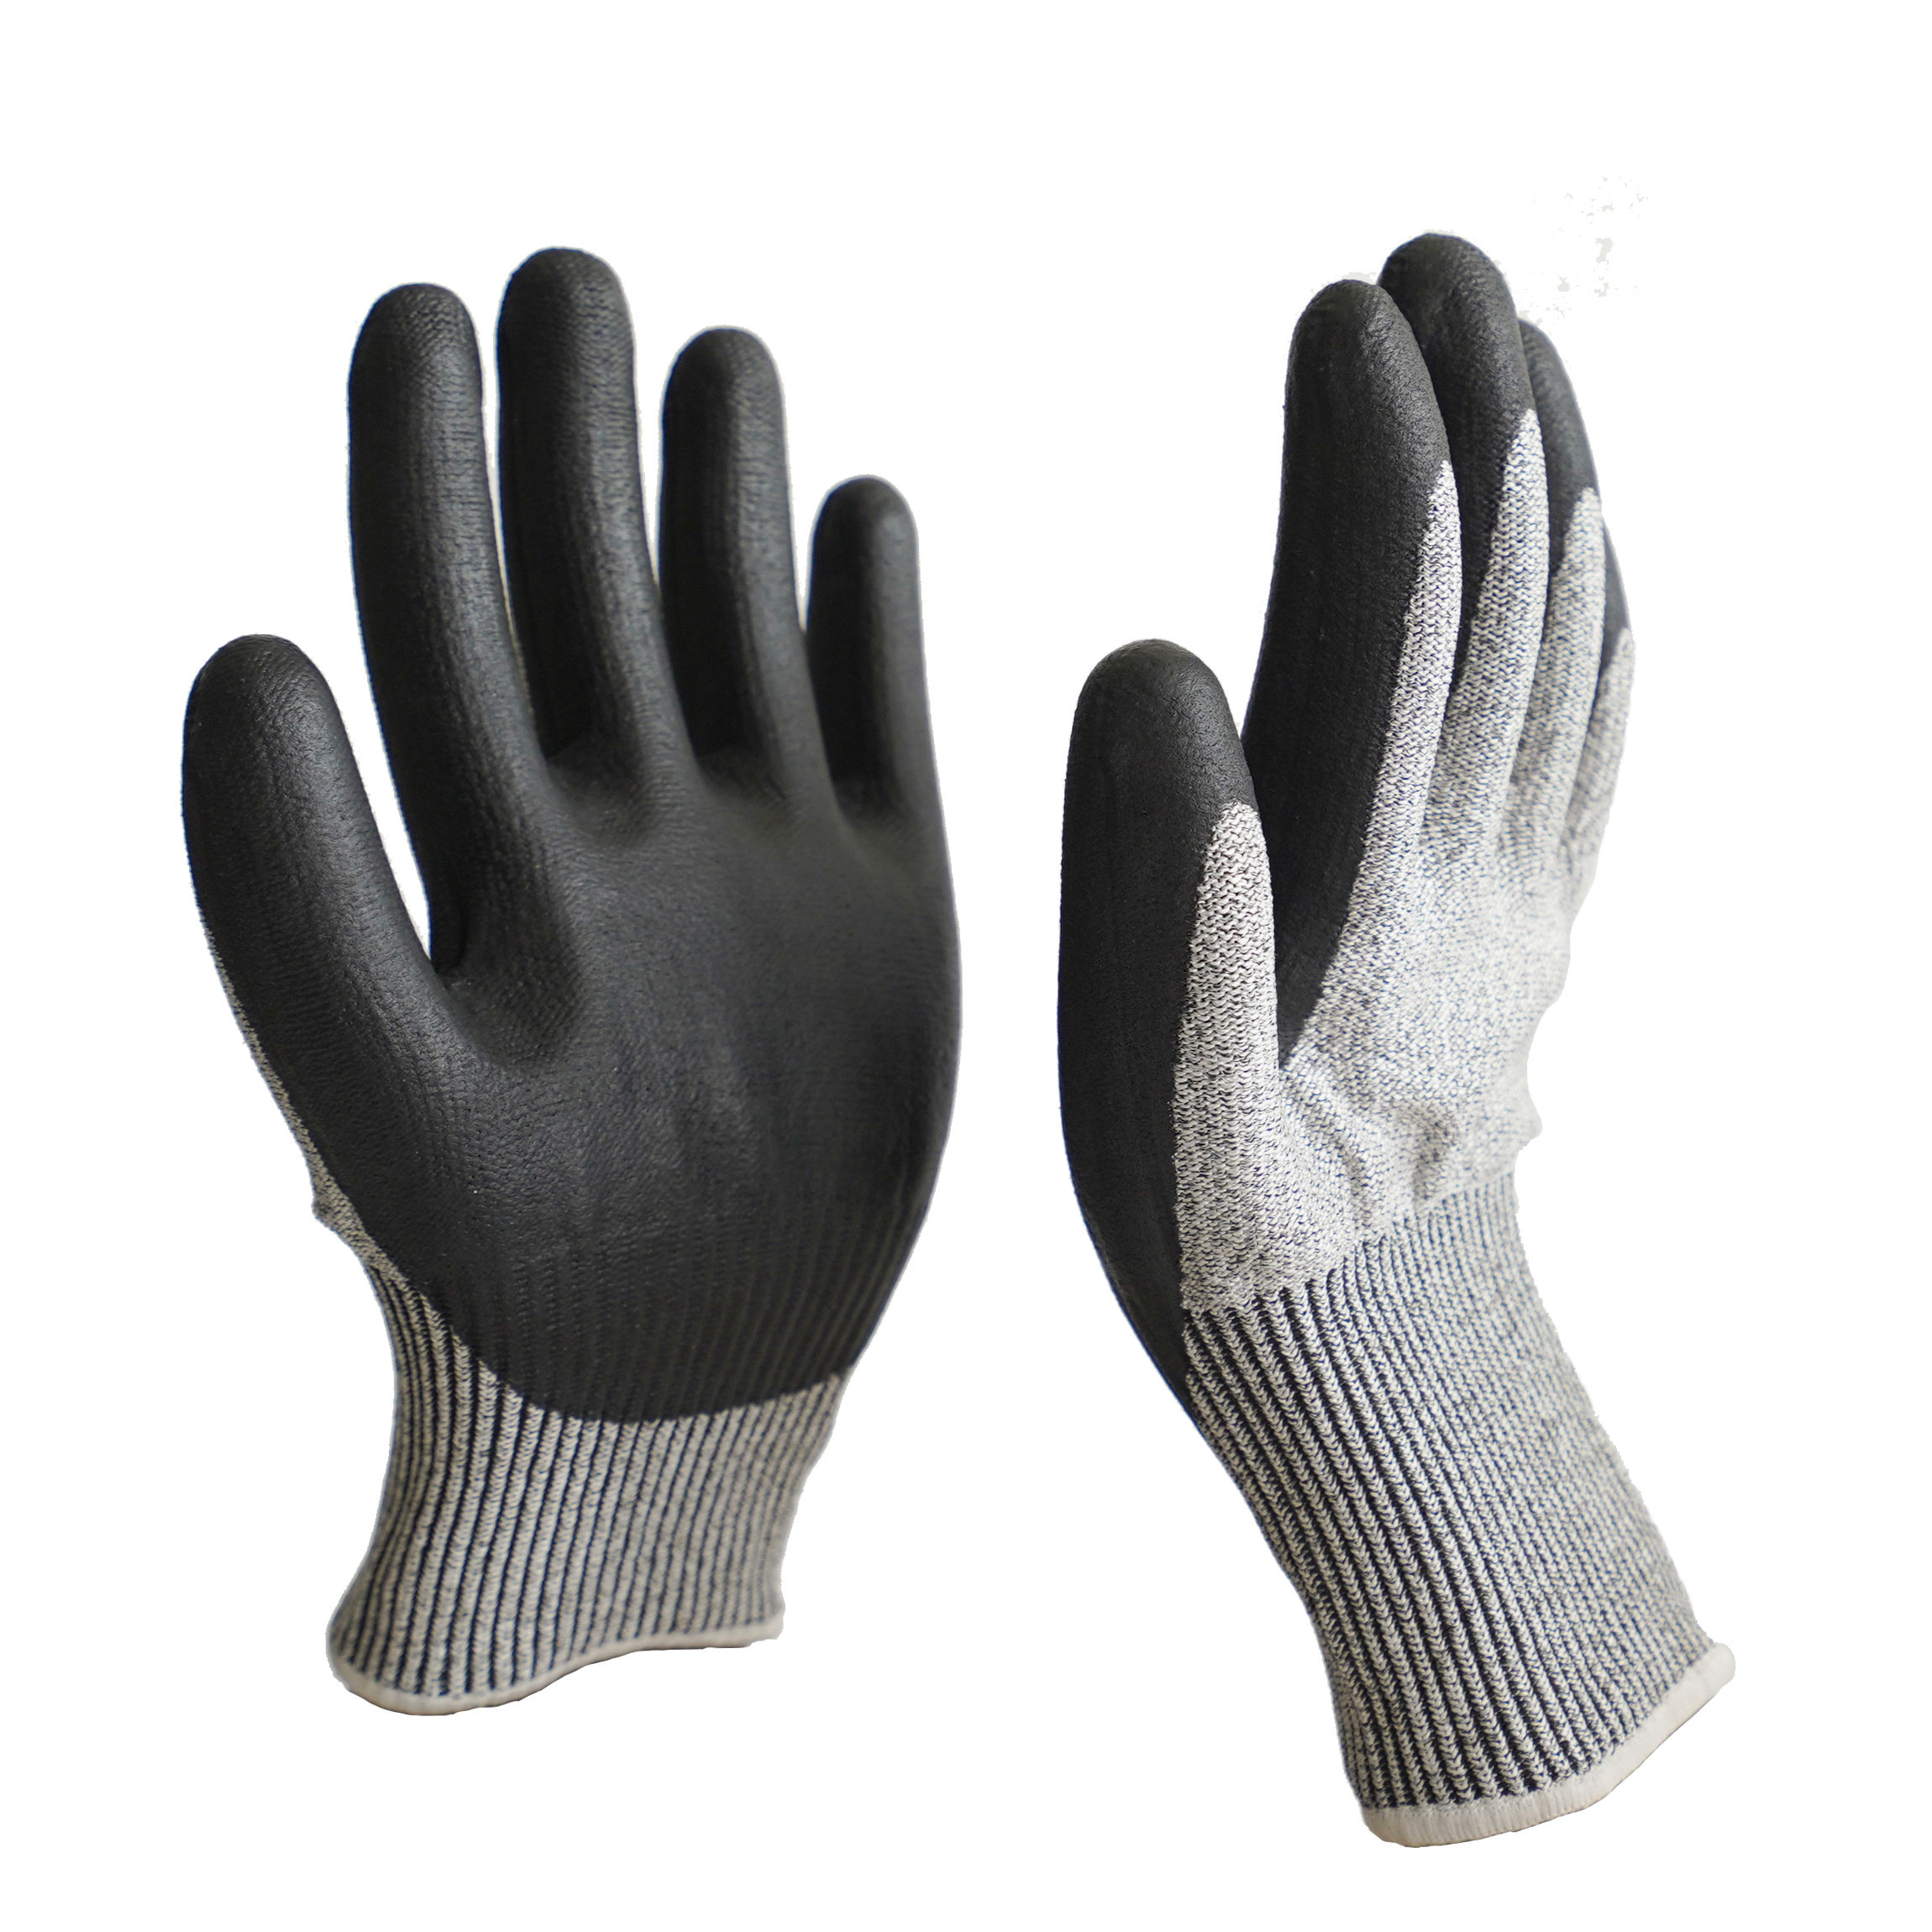 grey cut resistant hppe liner with black nitrile superfine foam coating hand protection work gloves